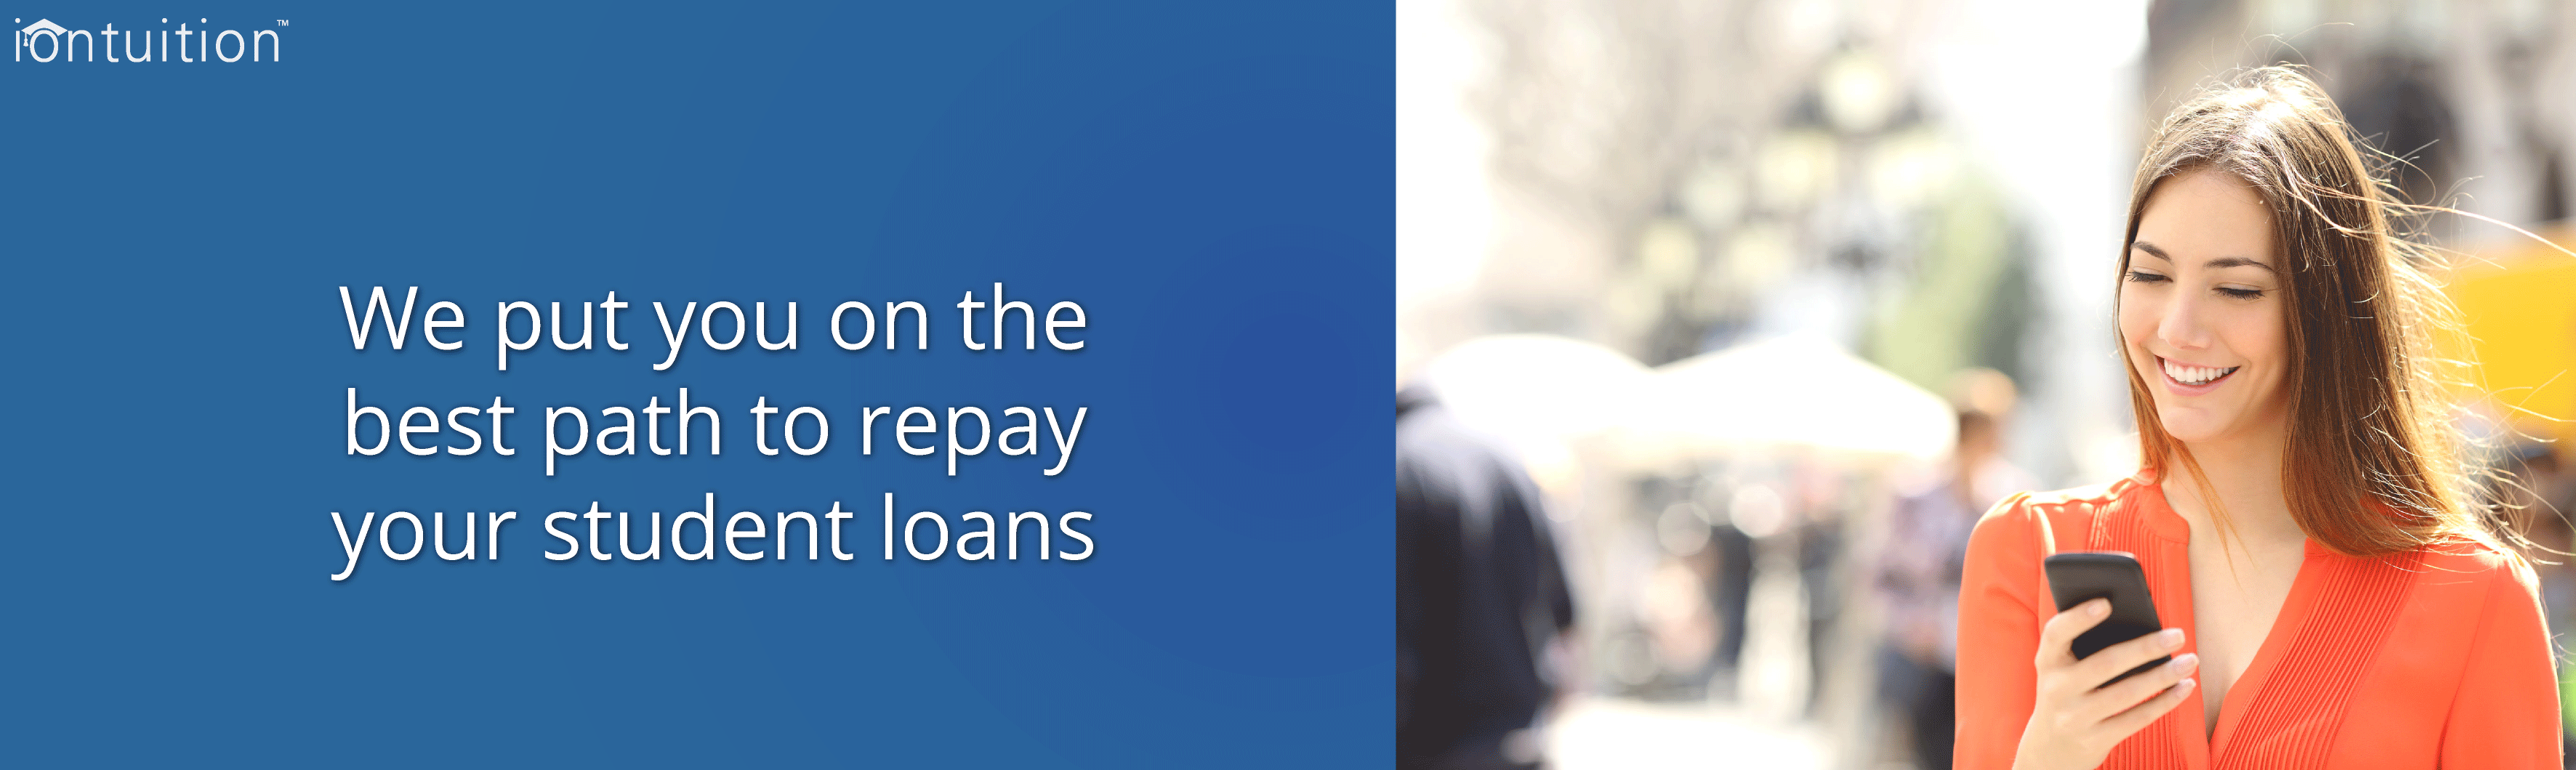 Start Your Repayment on the Right Track